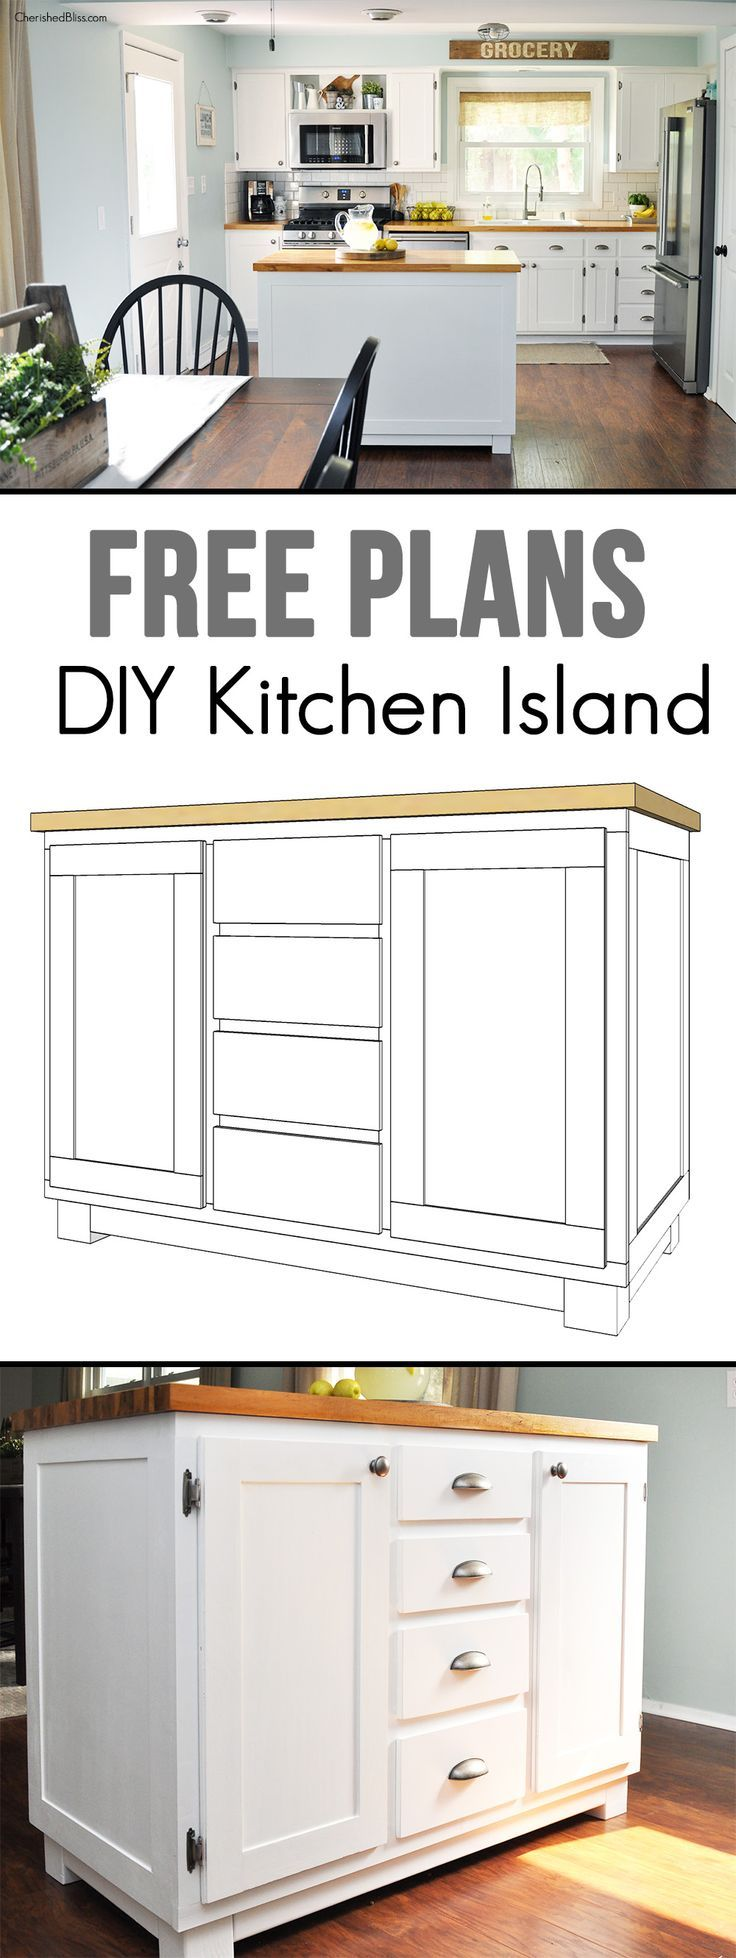 Design Diy Cabinets best 25 diy kitchen cabinets ideas on pinterest get the youve always dreamed of by building this island